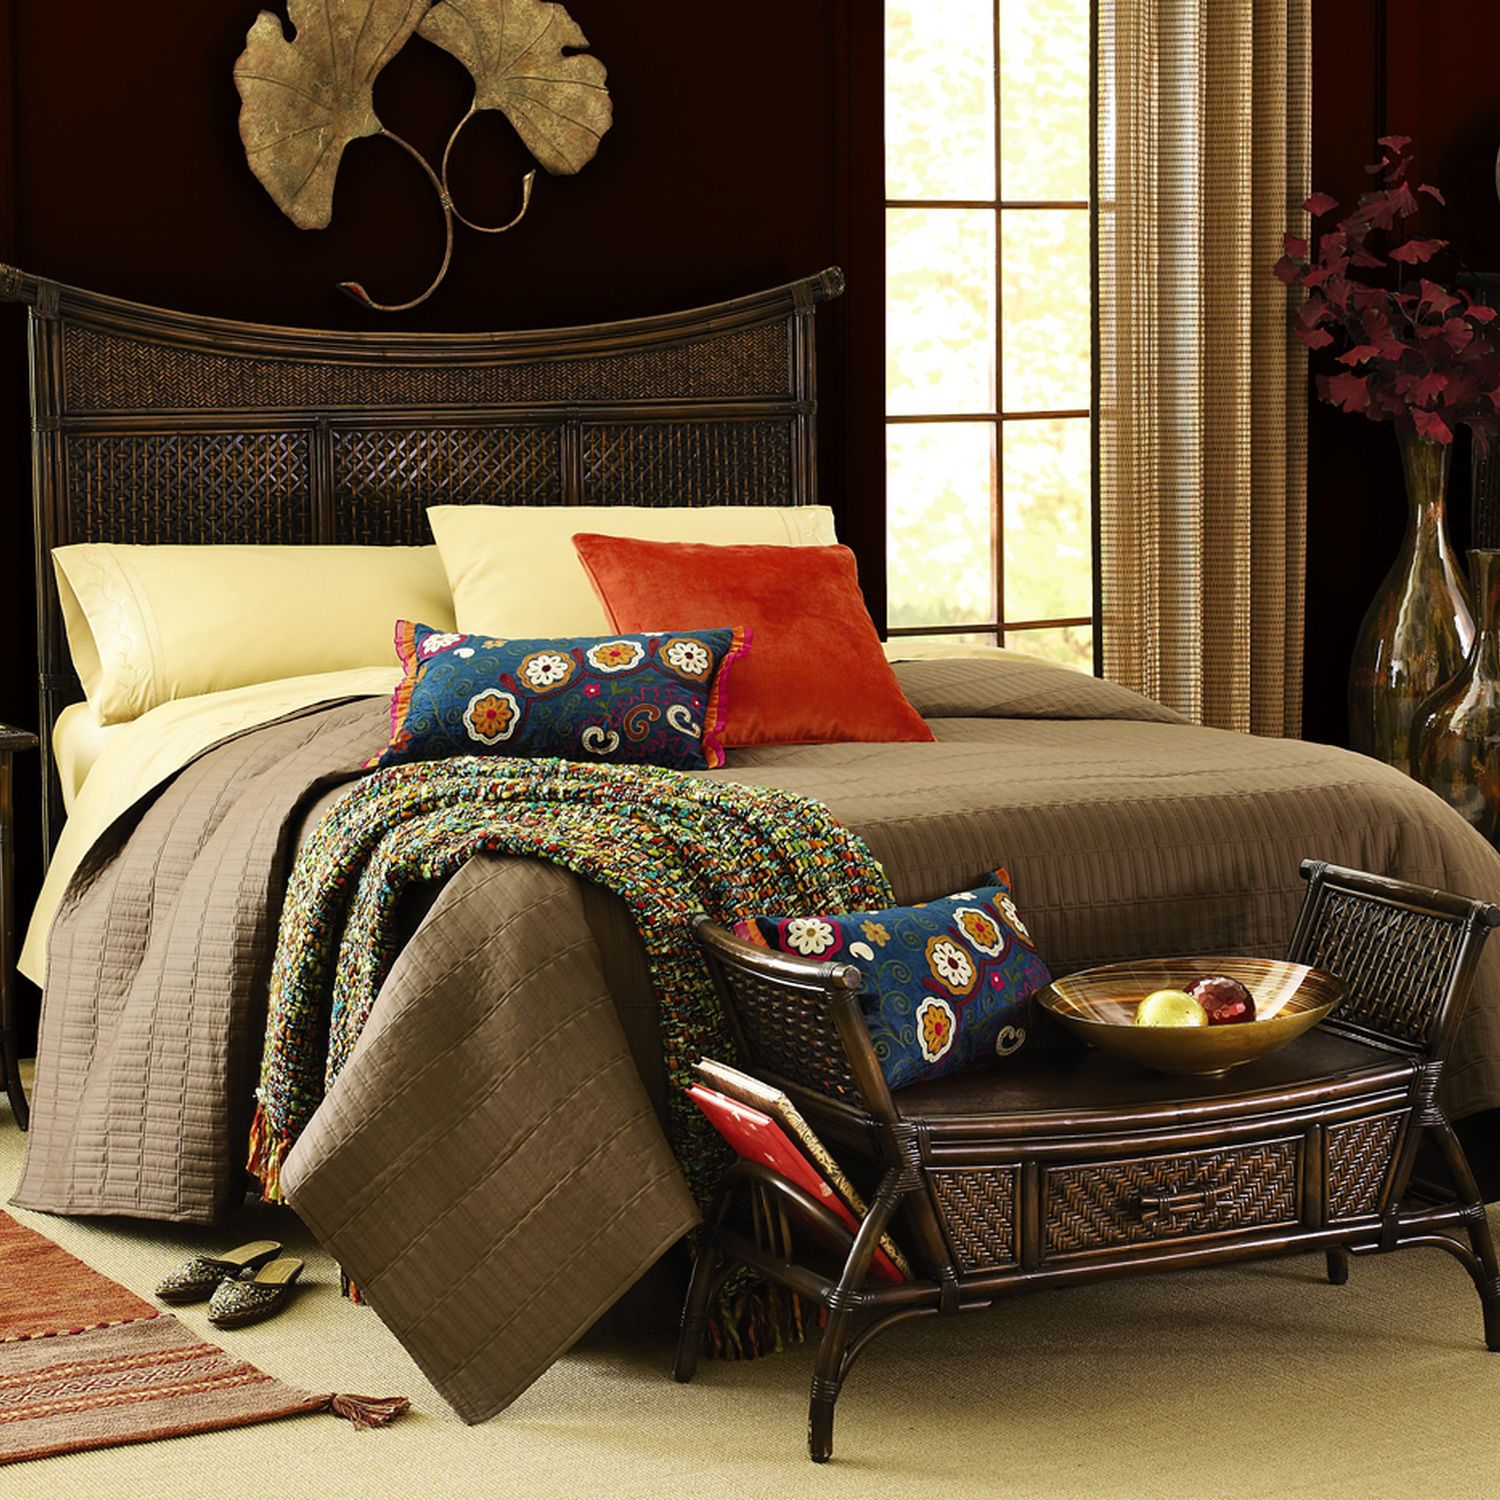 Pier 1 Senopati Furniture- Bedroom Idea